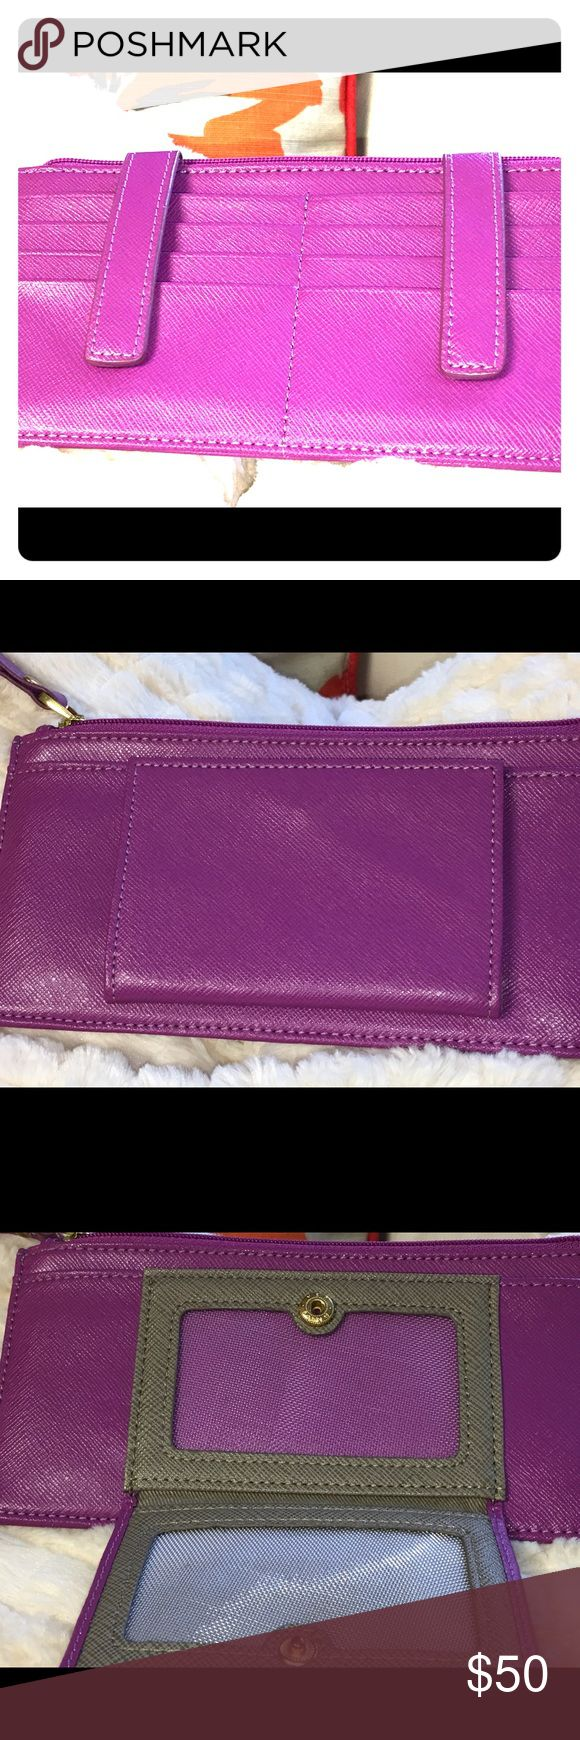 💜💜 Leather Credit Card Holder and Bifold 💜💜 Very nice leather credit card holder and bifold!! 8 slots for credit cards with snap closures to secure cards. License holder and 2 places for bills or coins.  Not sure of dimensions, but slim style fits most small and cross body style bags. Neiman Marcus Accessories Key & Card Holders